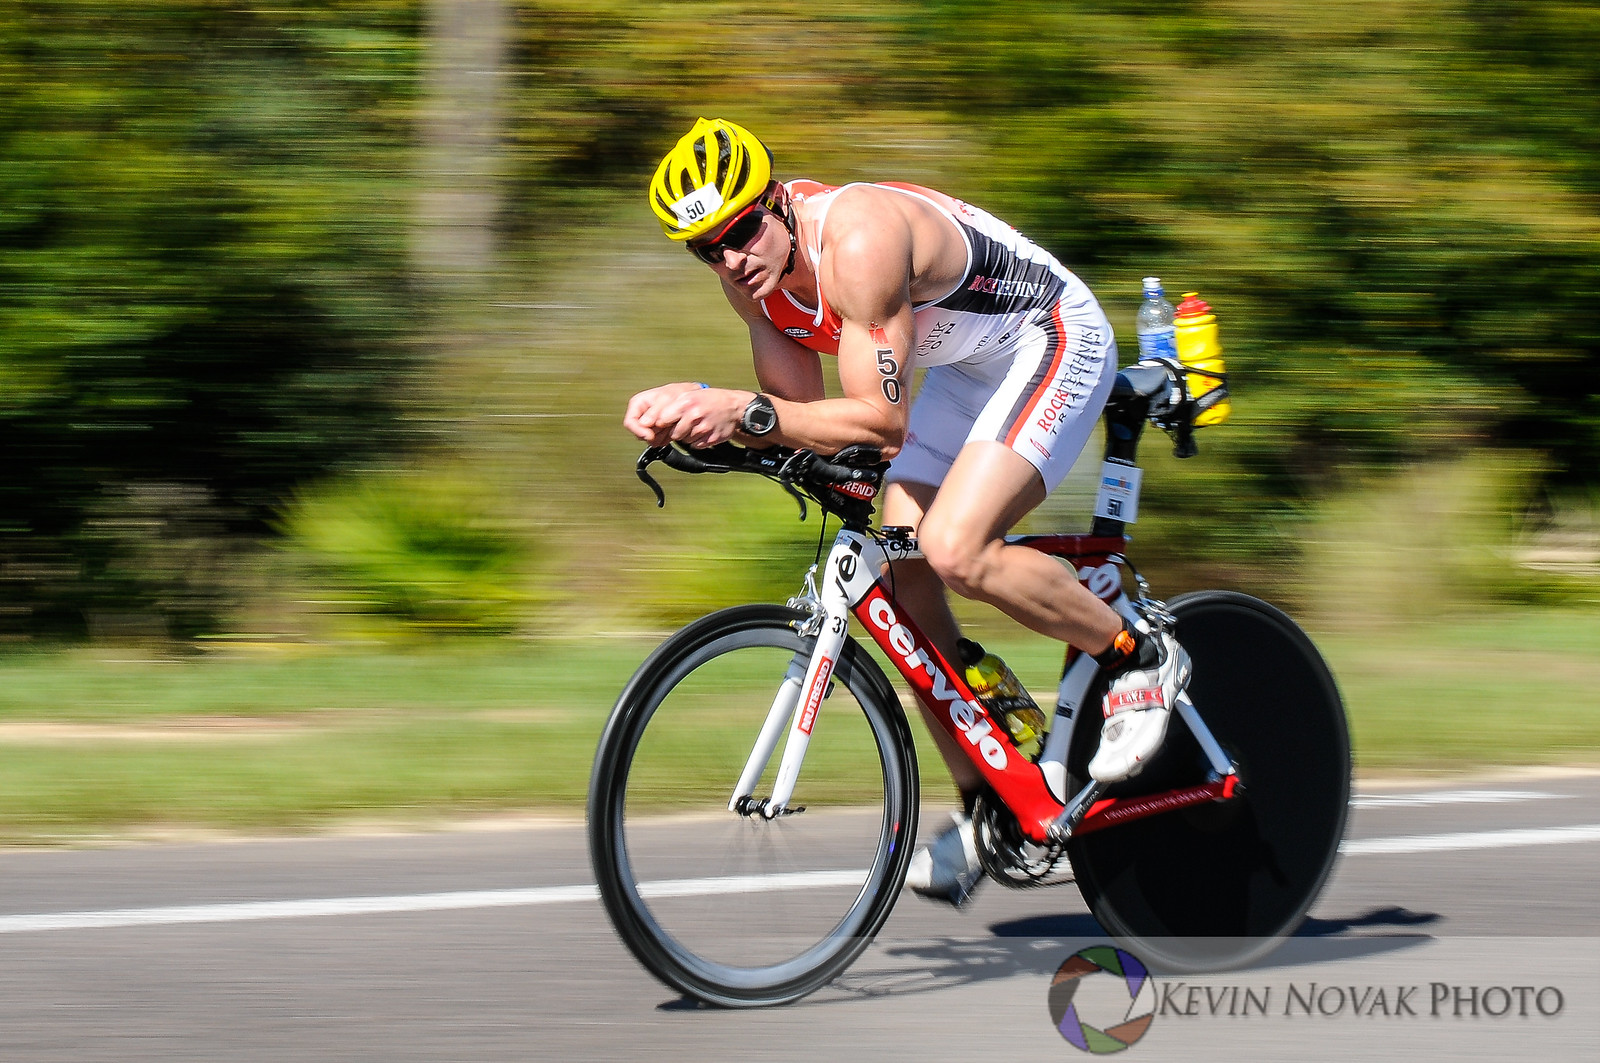 Bicycle portion of the 2013 Florida Ironman Triathlon held in Panama City Beach, FL 11-2-13.  ©2013 Kevin Novak.